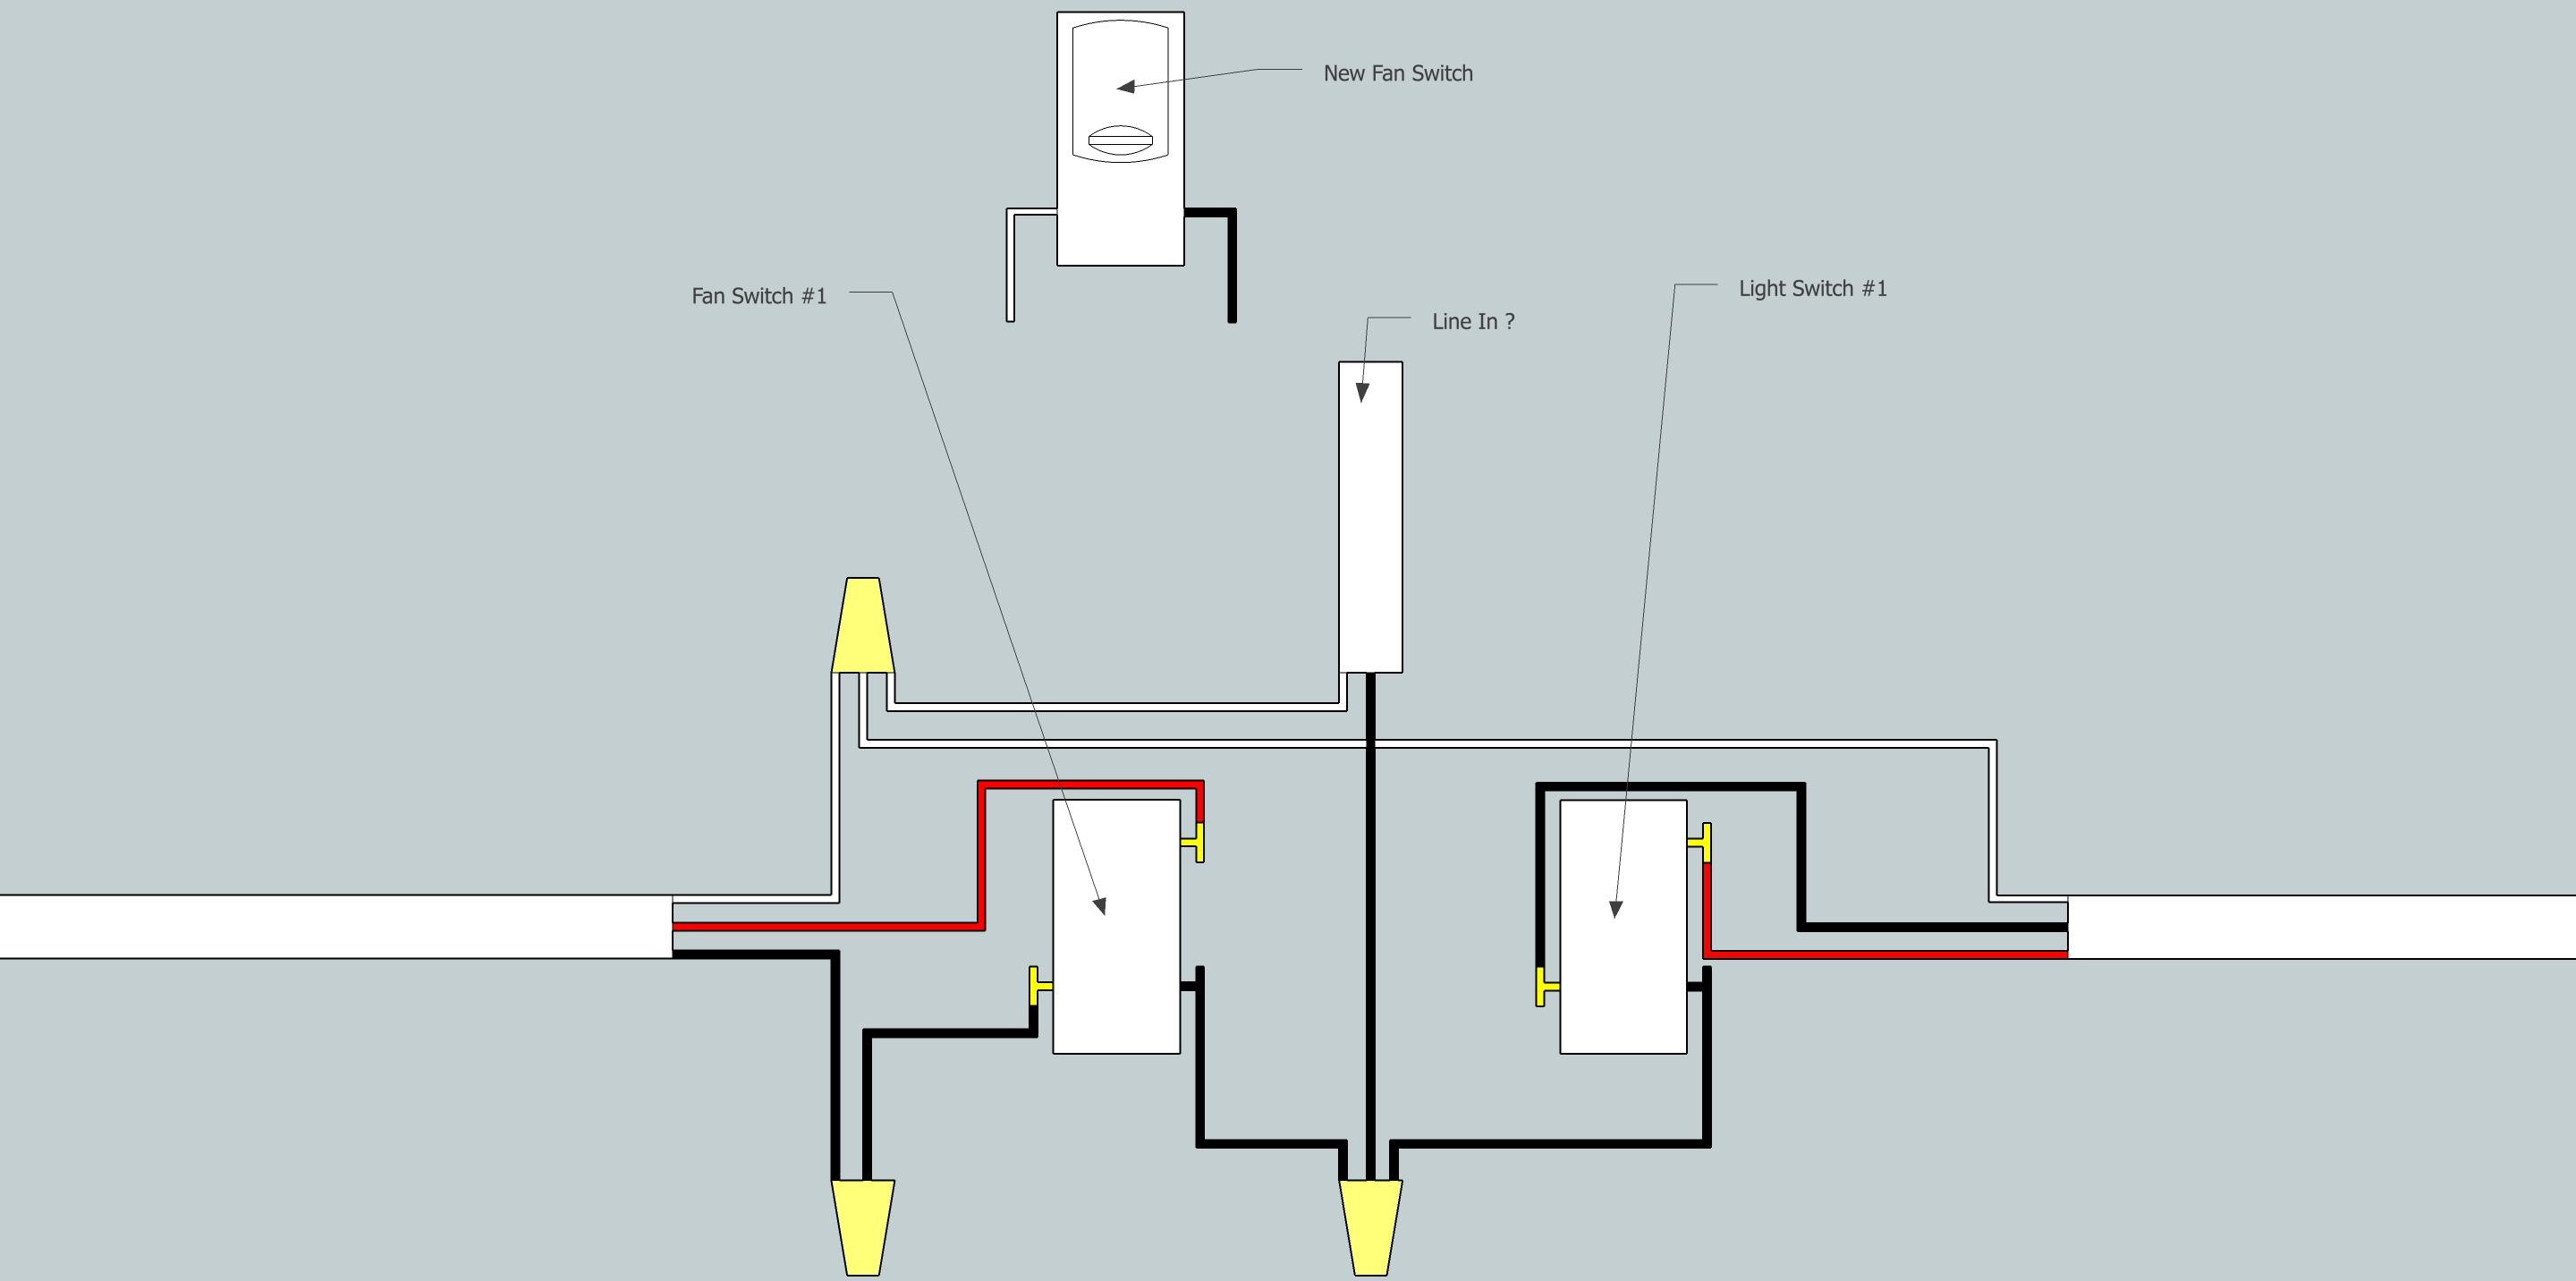 Electrical - Need Help Adding Fan To Existing 3-Way Switch Setup - 3 Way Switching Wiring Diagram